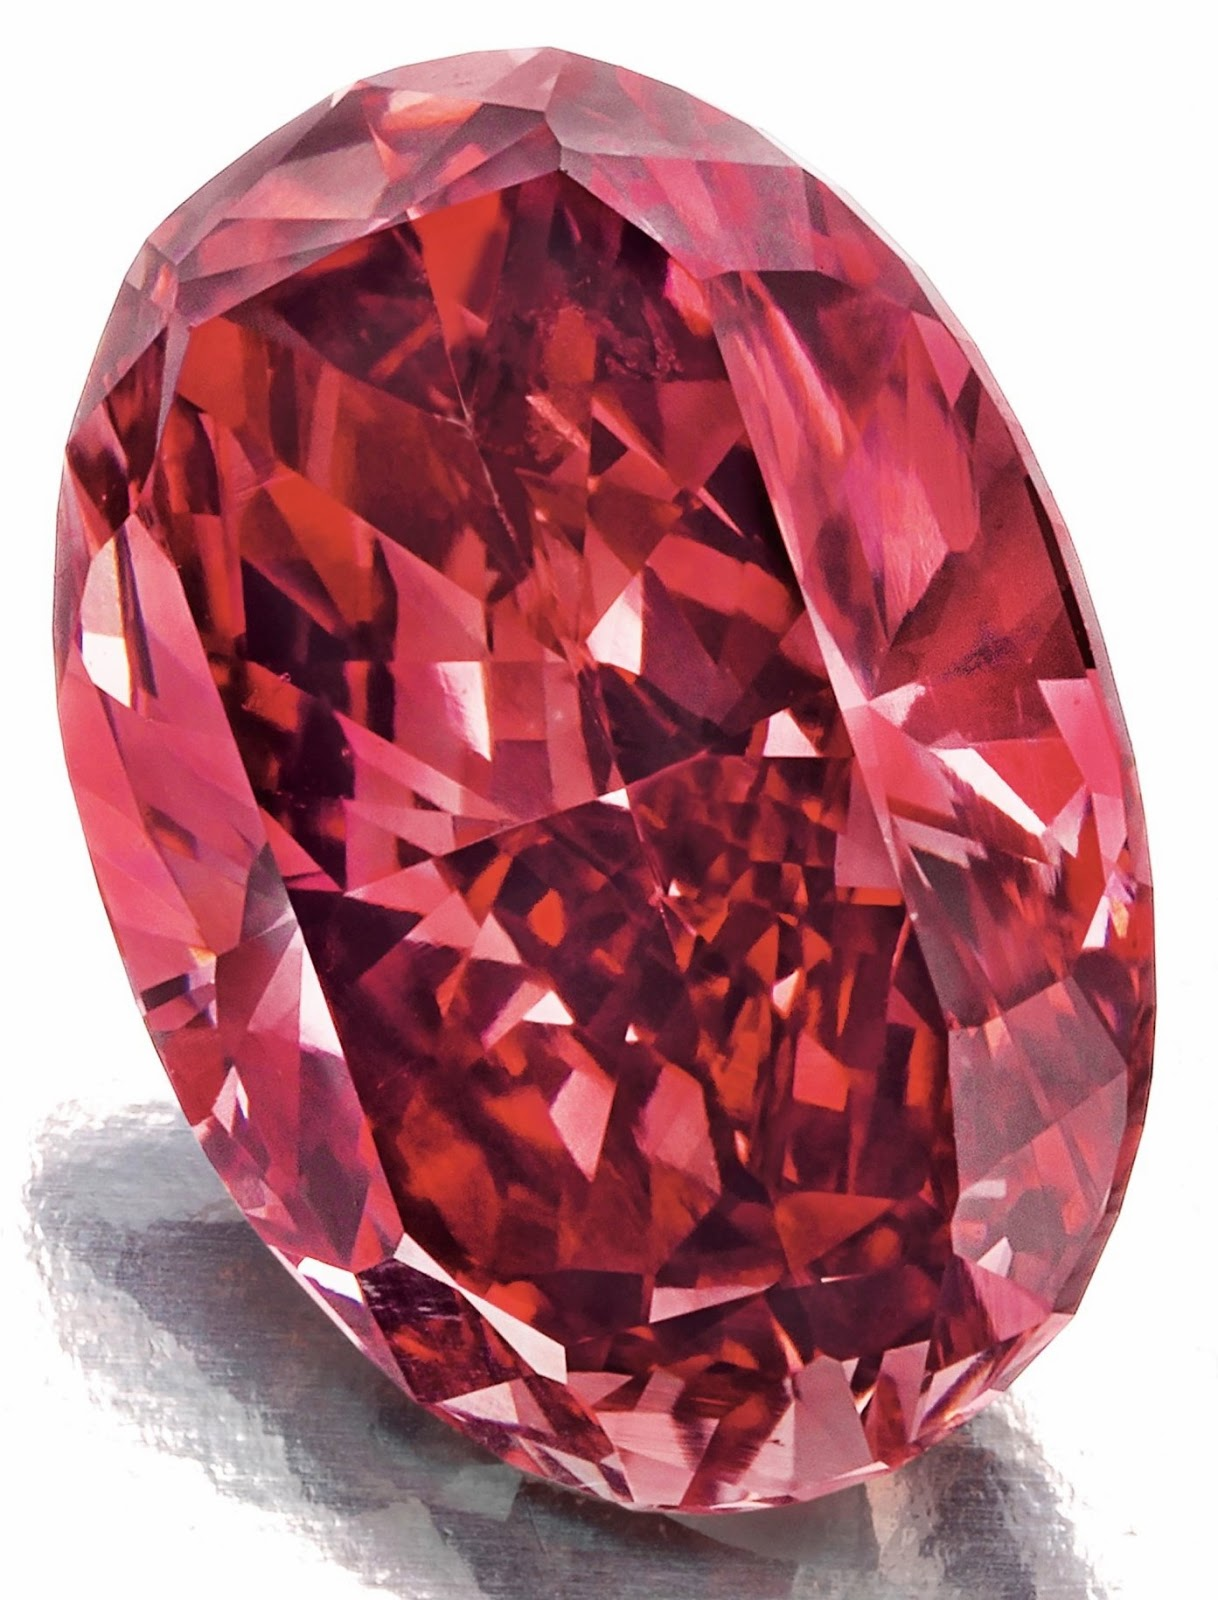 A 1.42-carat, oval-cut fancy red VS2 diamond sold for $2.16 million or more than $1.5 million per carat at the Christie's Magnificent Jewels Sale, December 2014. Image: Christie's